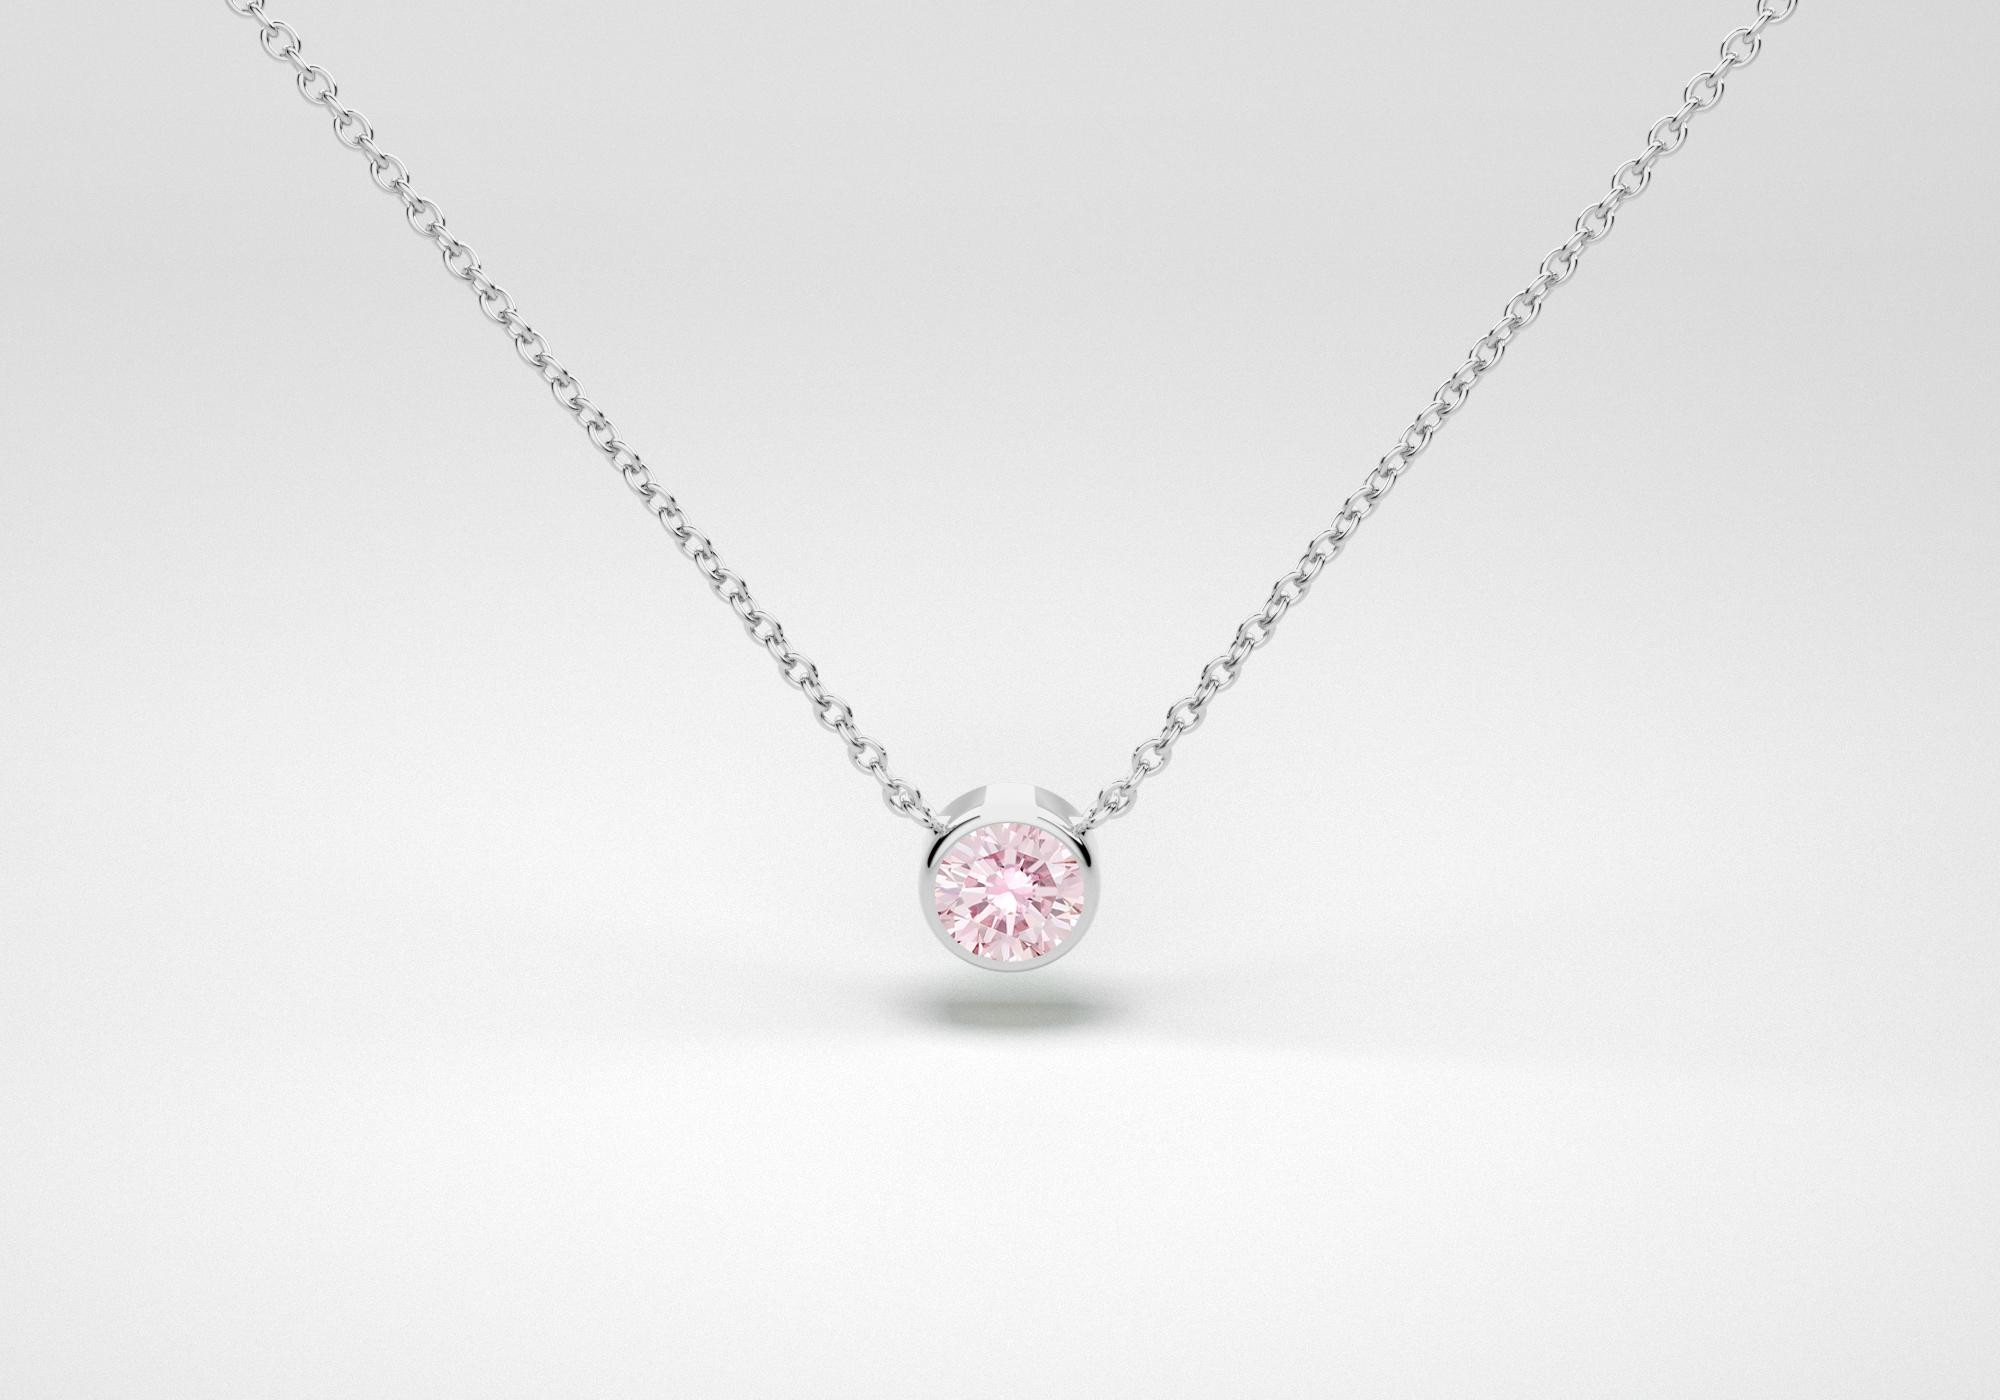 The One Necklace - Pink - White Gold 18 Kt